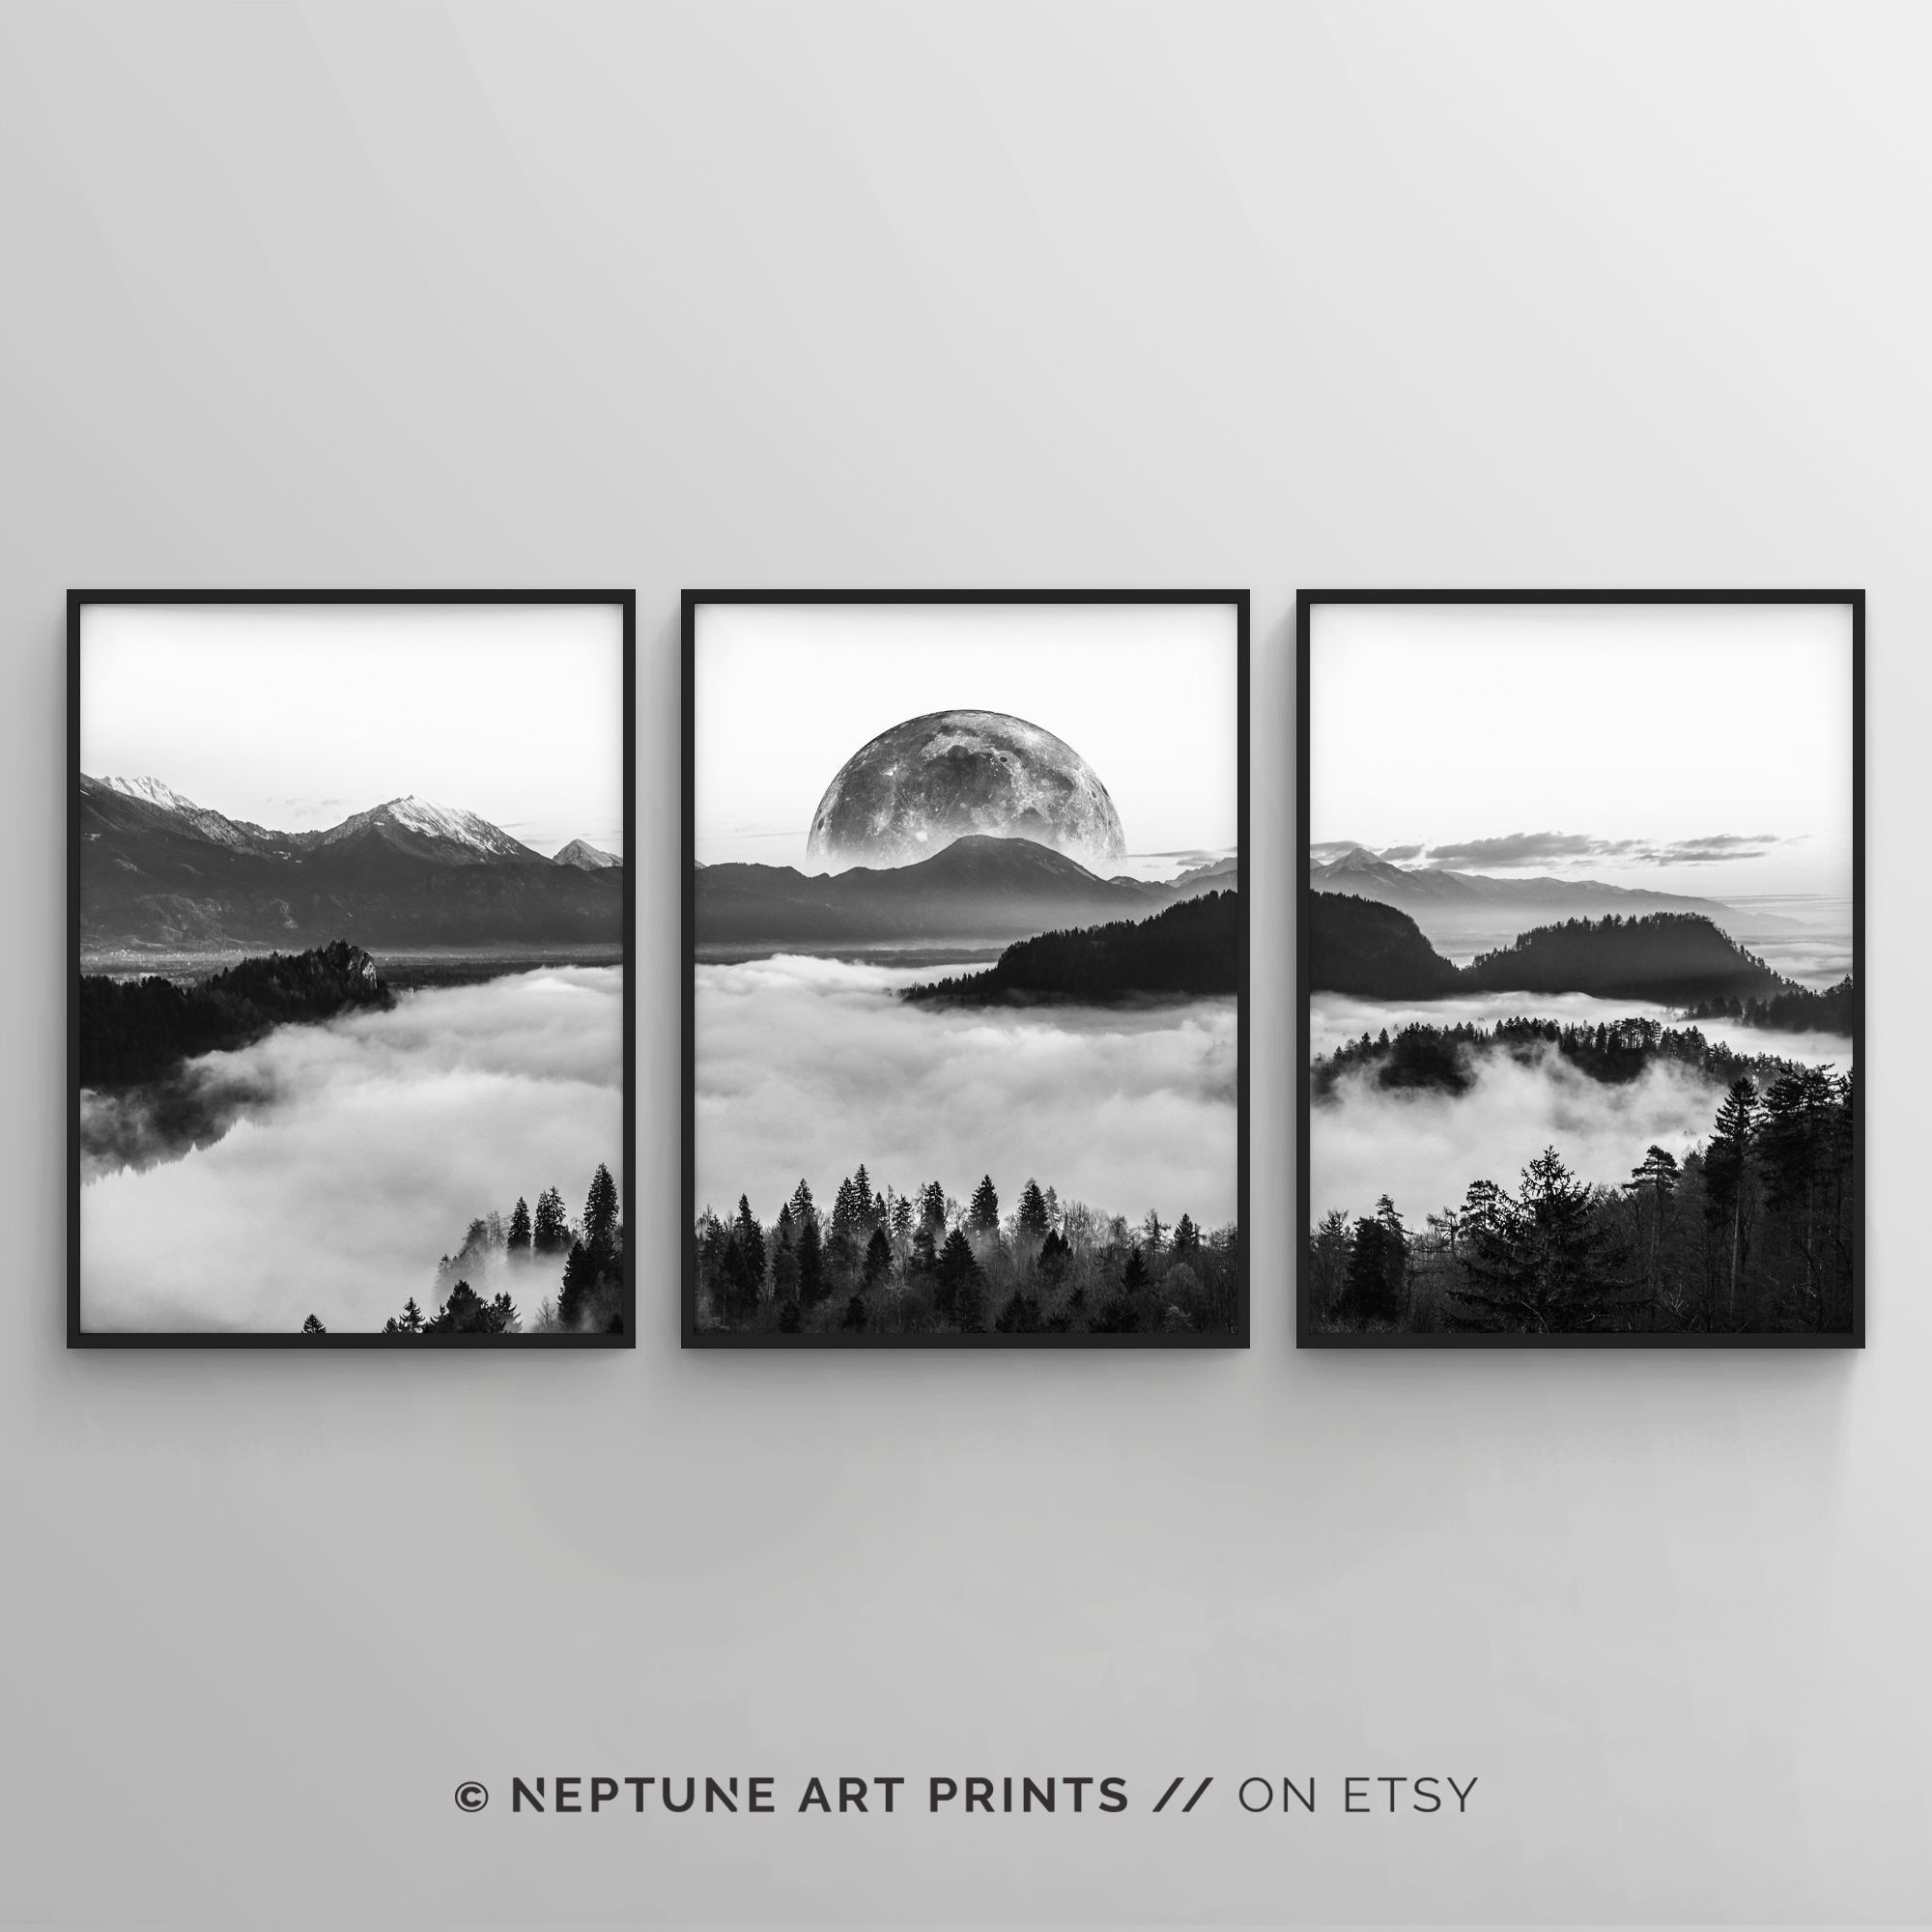 Black And White Photography Wall Art Poster Print Set Of 3 Piece Fog Forest Landscape Set Full Moon Nature Large Home Decor 24x36 18x24 Photography Wall Art Nature Prints Wall Art